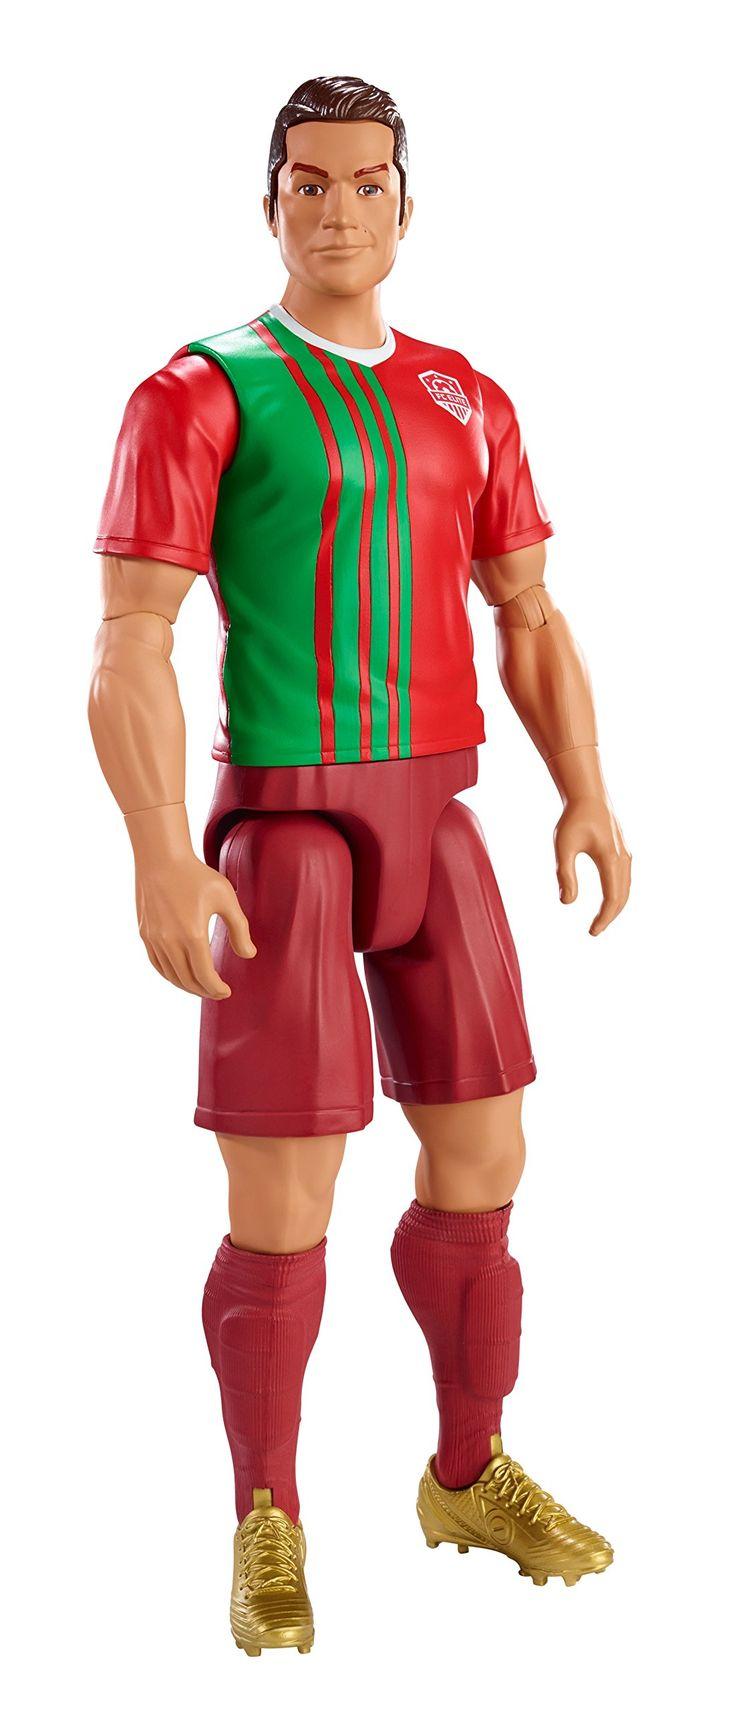 Keylor navas pays tribute to cristiano ronaldo sports mole - Fc Elite Cristiano Ronaldo Soccer Action Figure Deluxe 12 Fc Elite Figure Of Fan Favorite Soccer Player Cristiano Ronaldo Created In The Star Athlete S